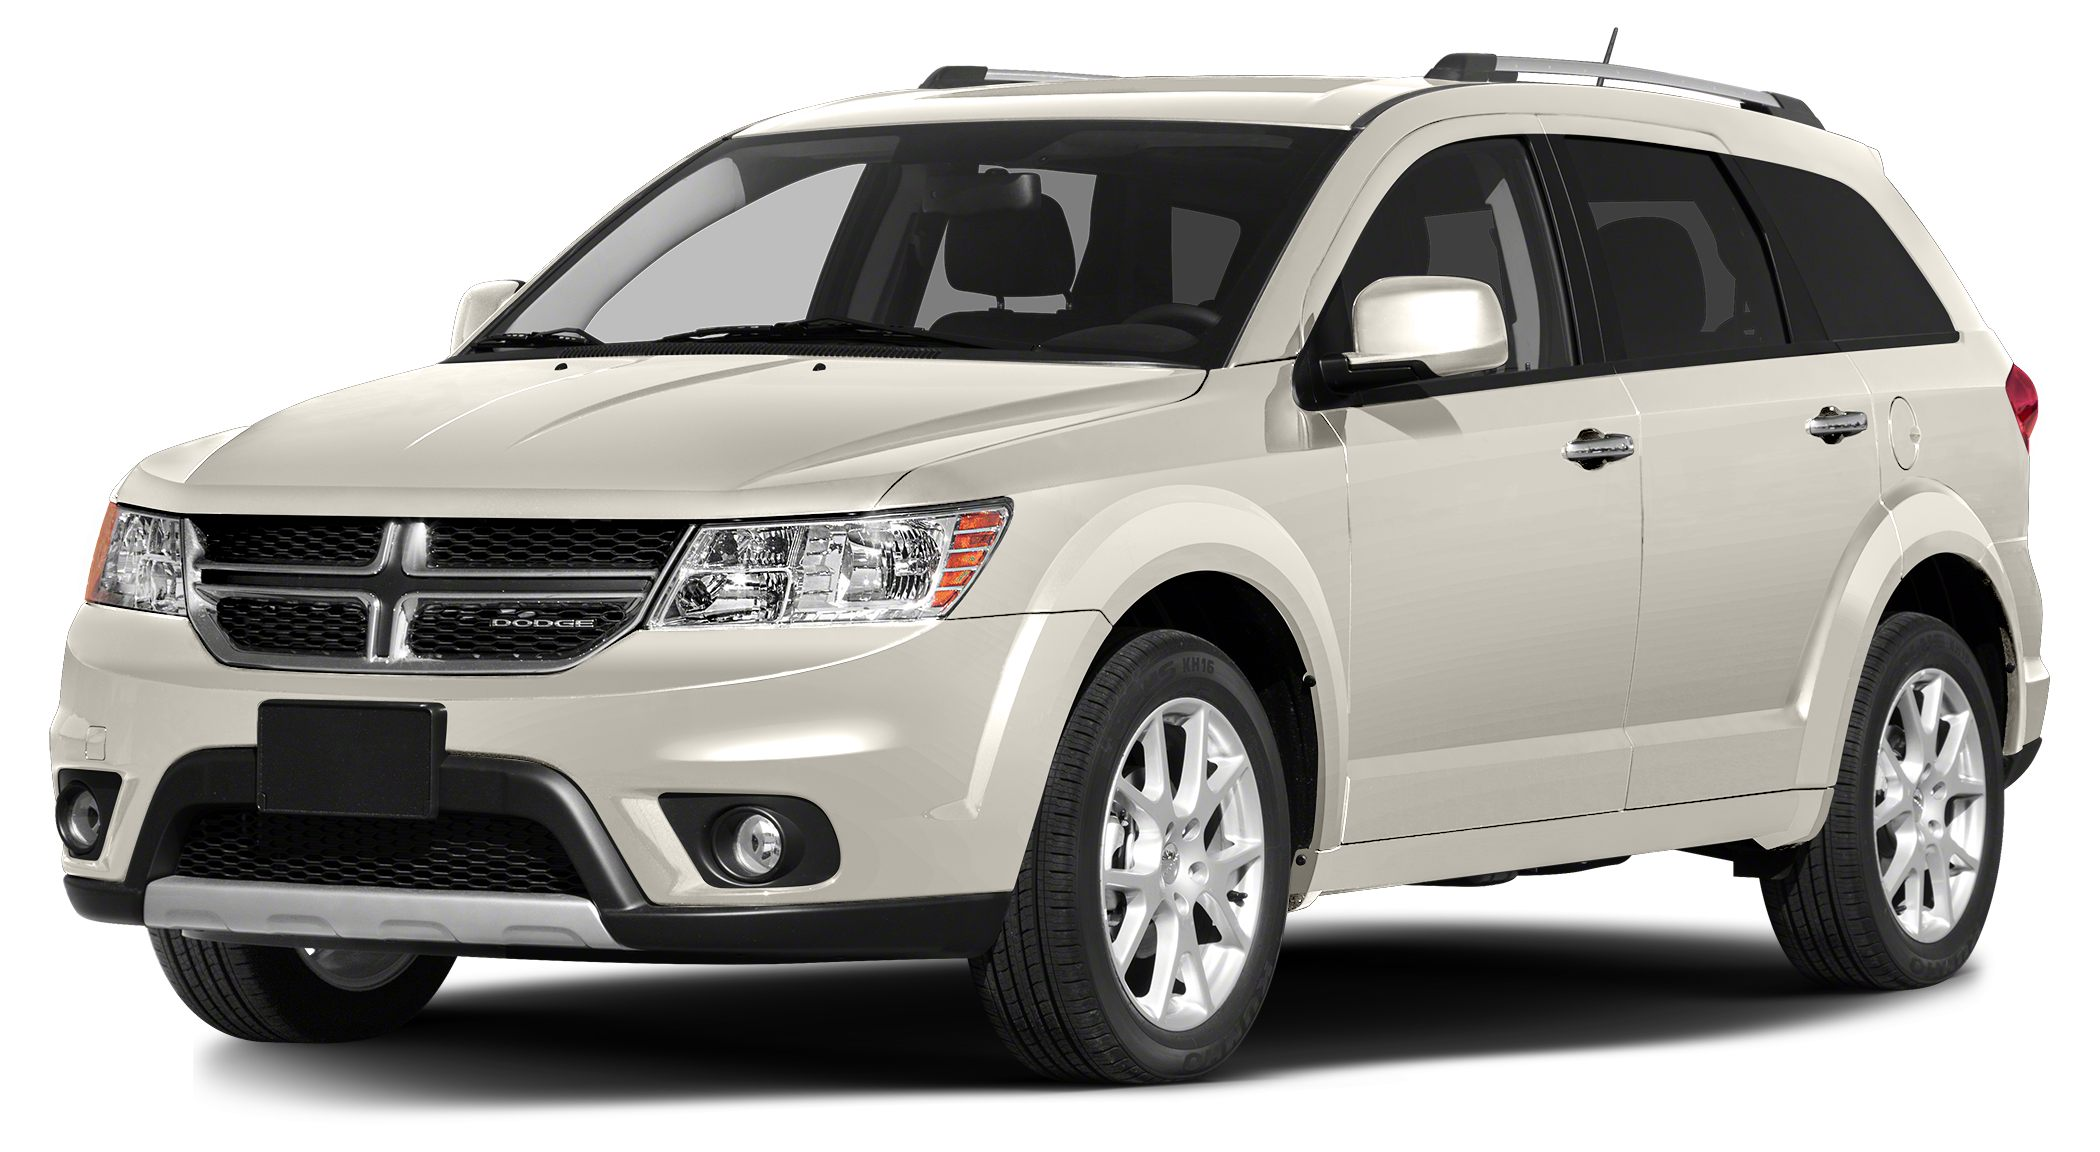 2015 Dodge Journey RT Recent Arrival AWD WARRANTY FOREVER included at NO EXTRA COST See ou